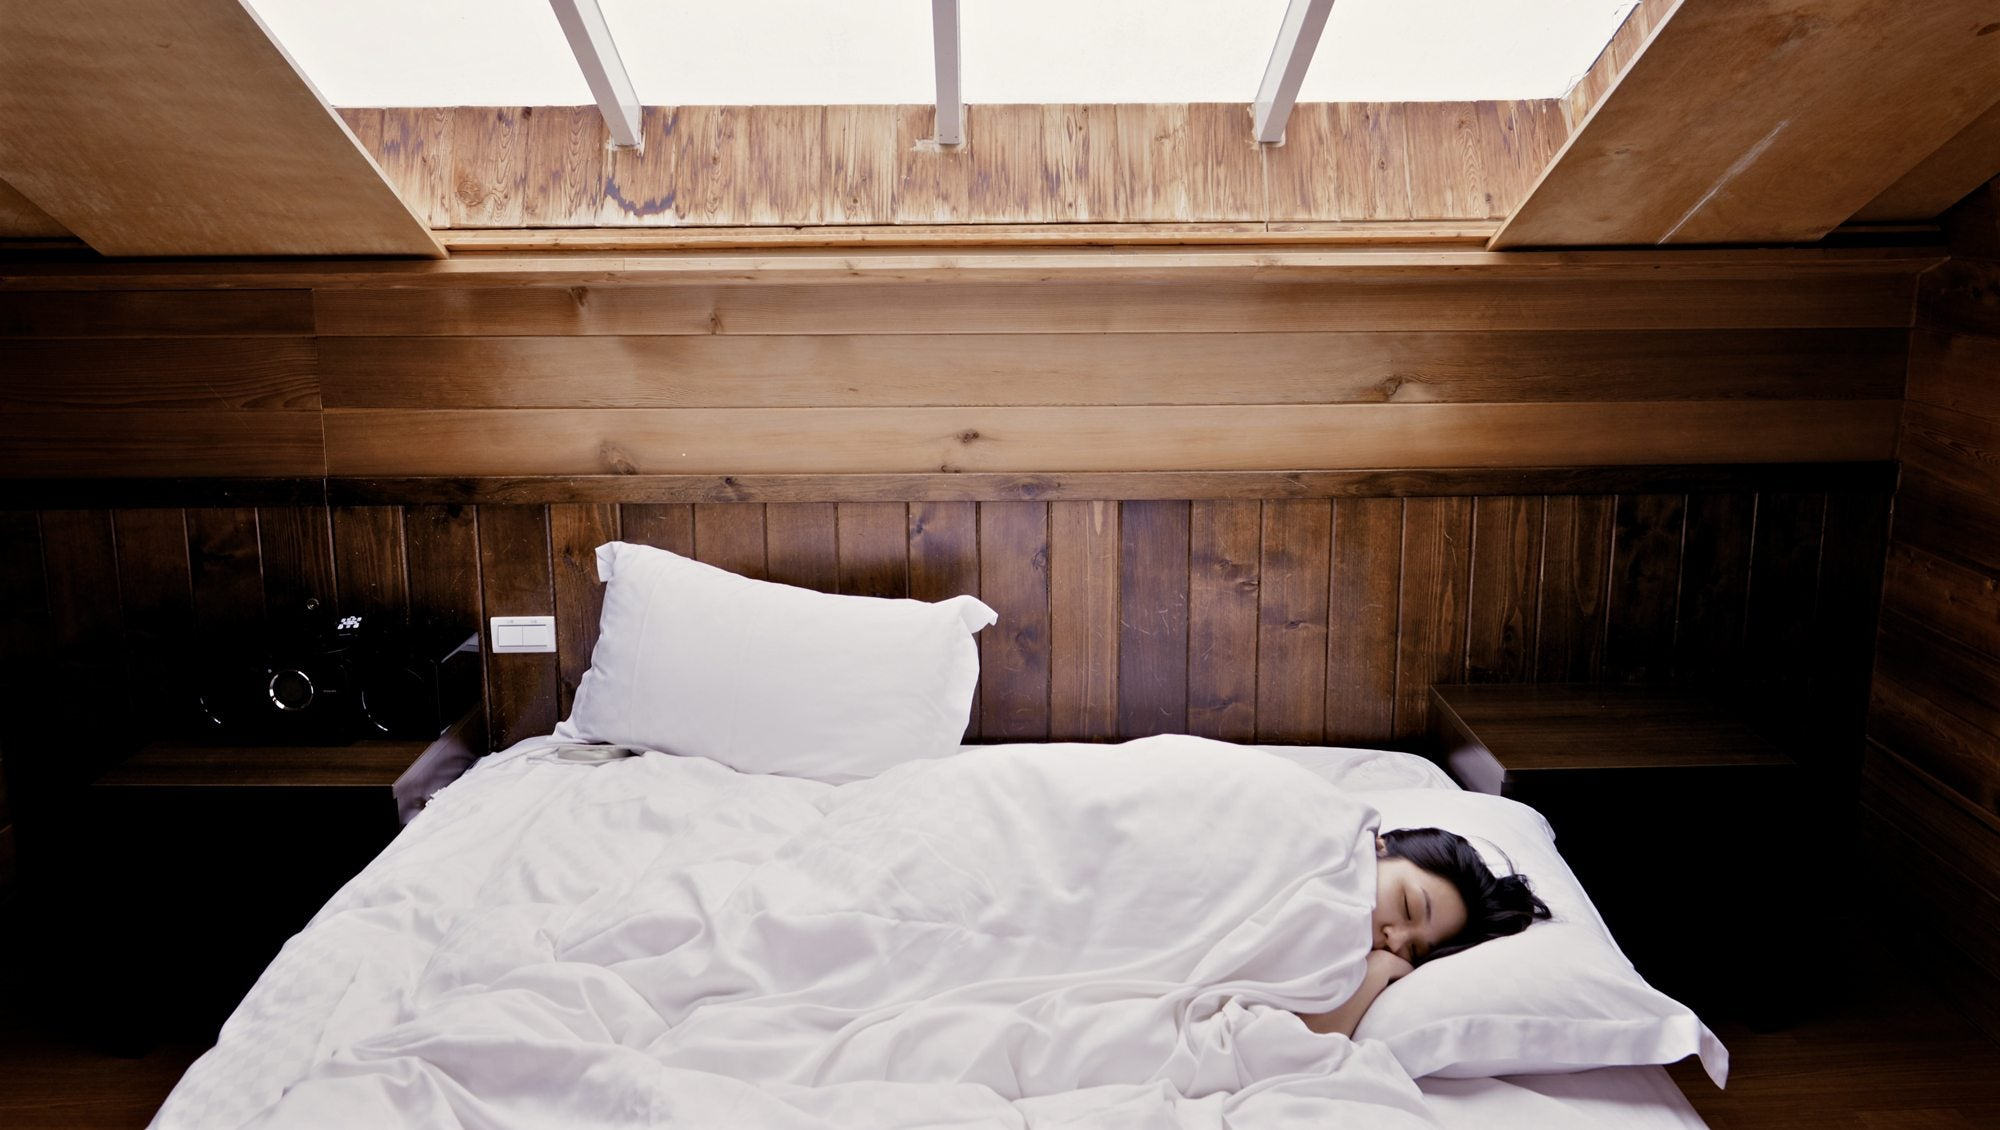 sleep 8 hours a night to improve your health